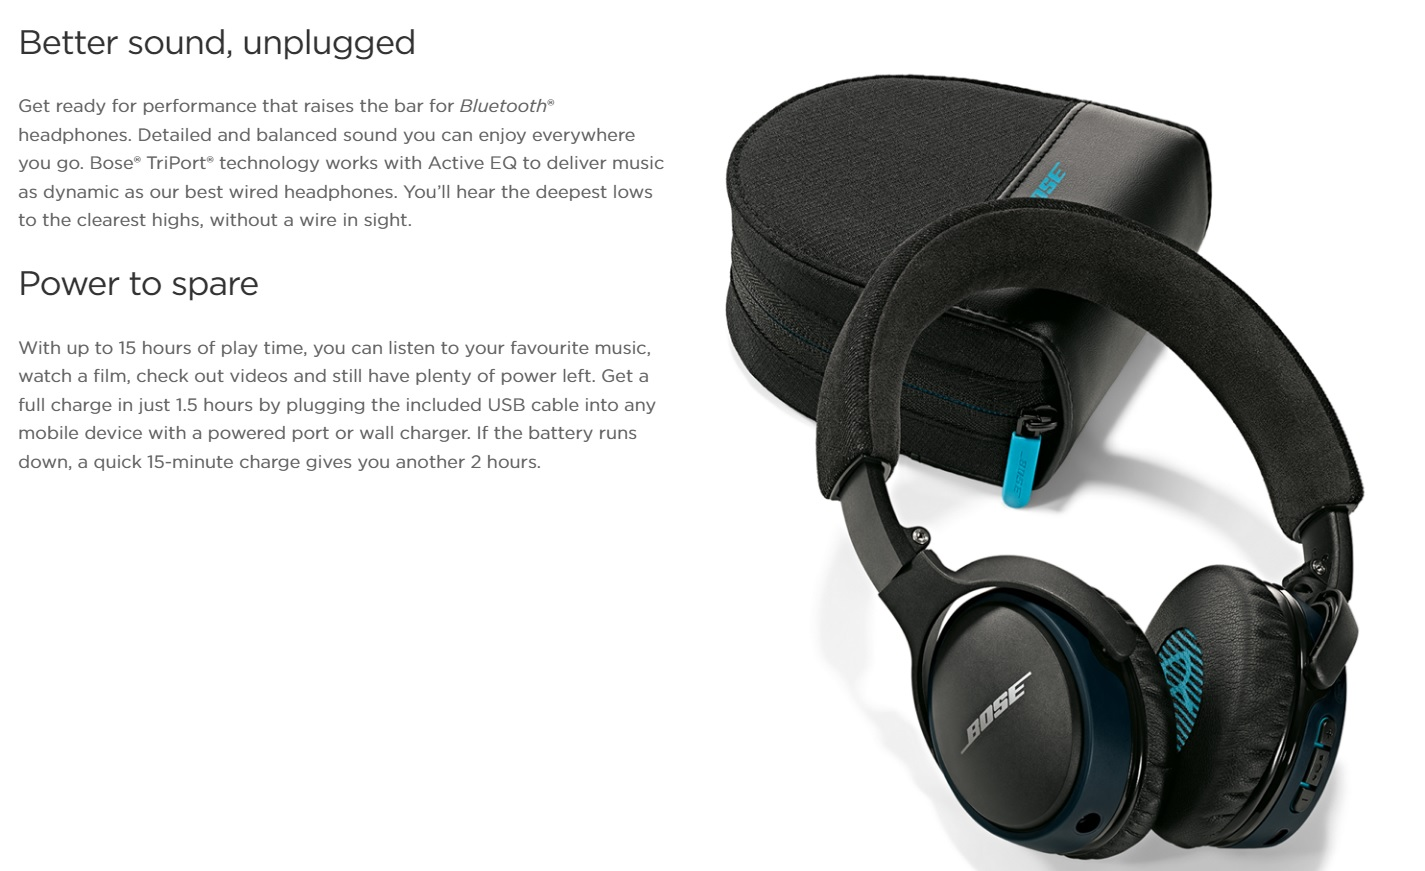 Bose product pagina's Case